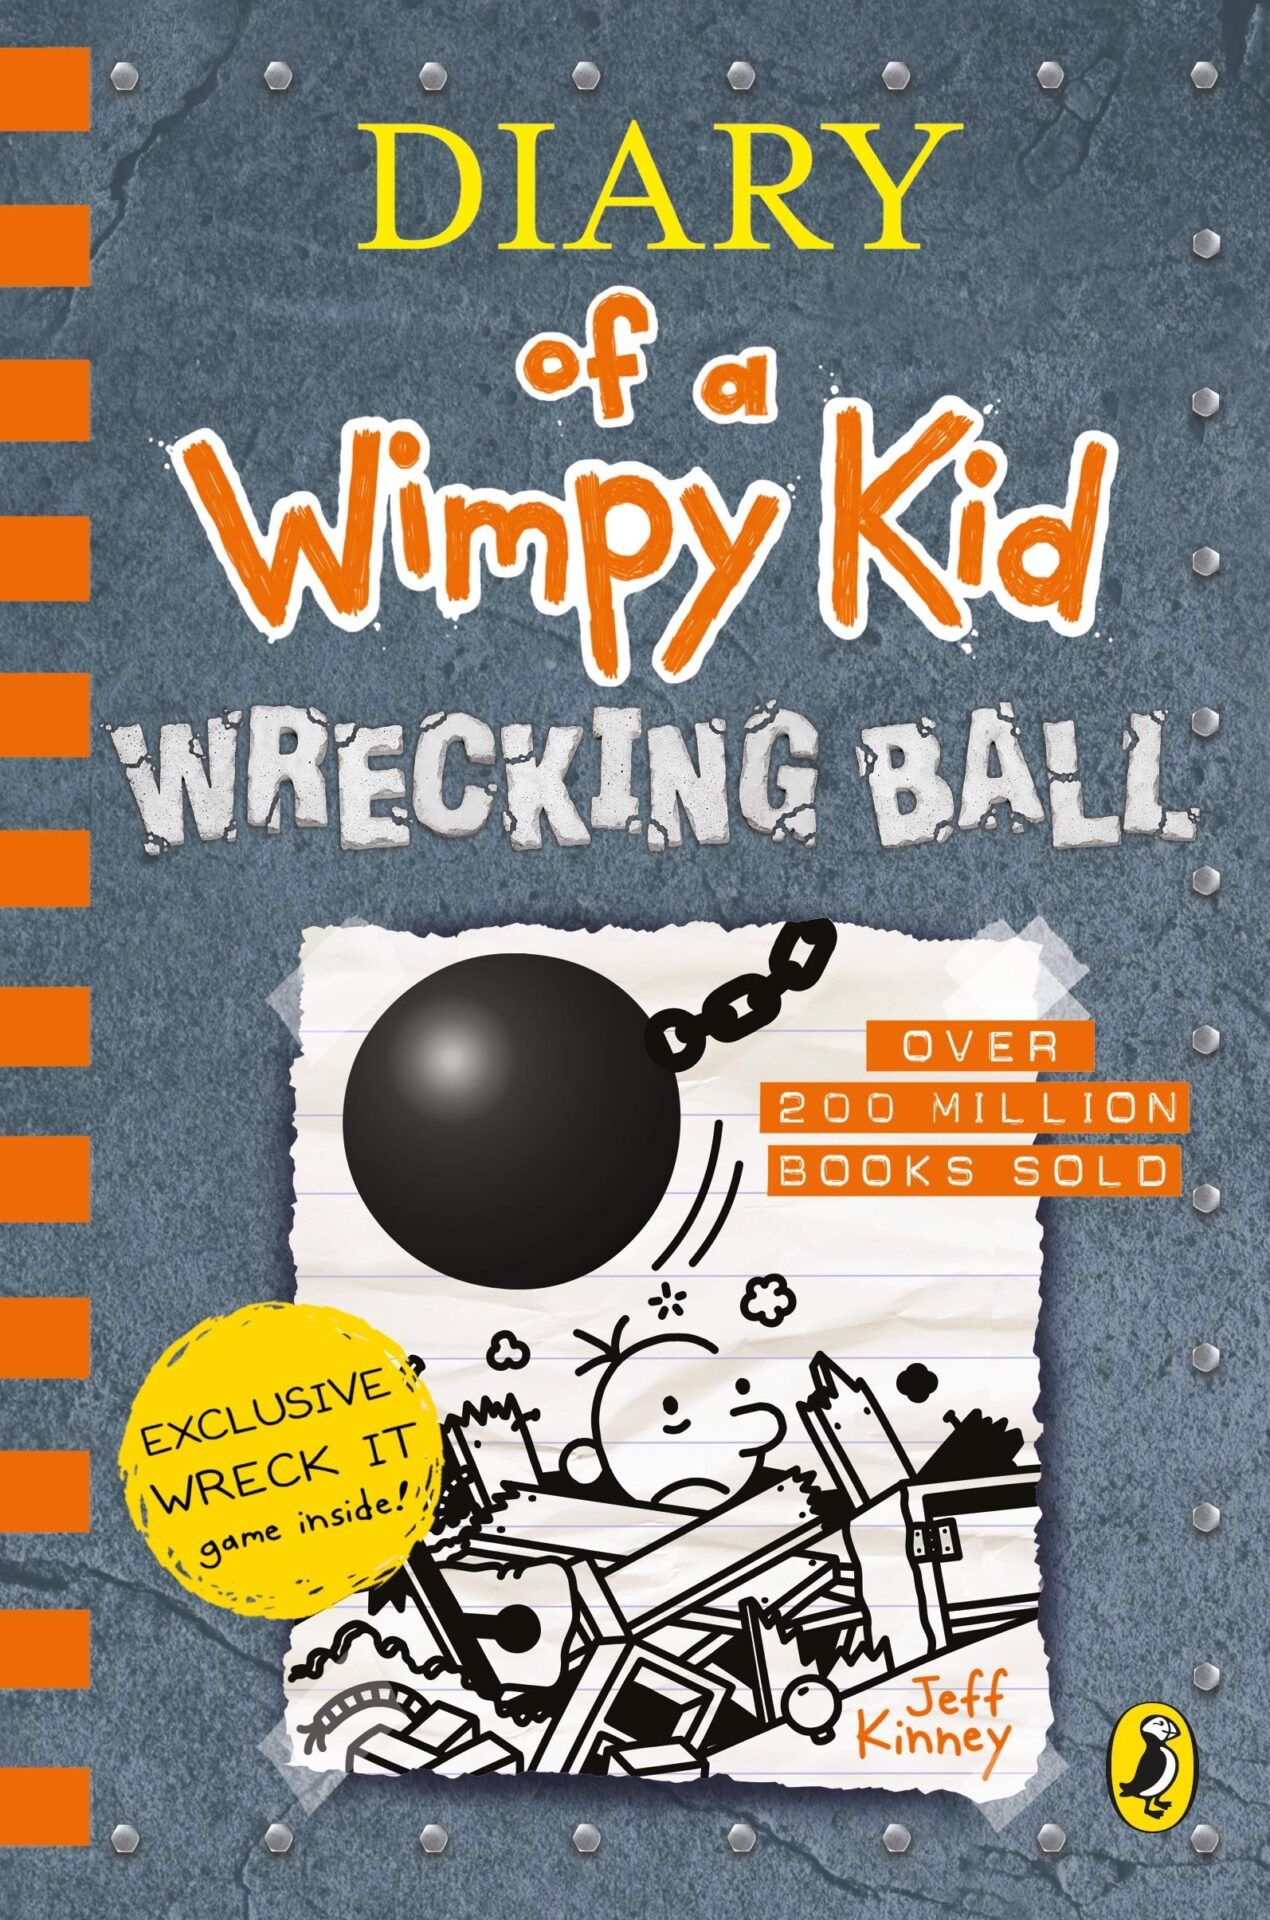 Diary of a Wimpy Kid Wrecking Ball book for 9 year old kids